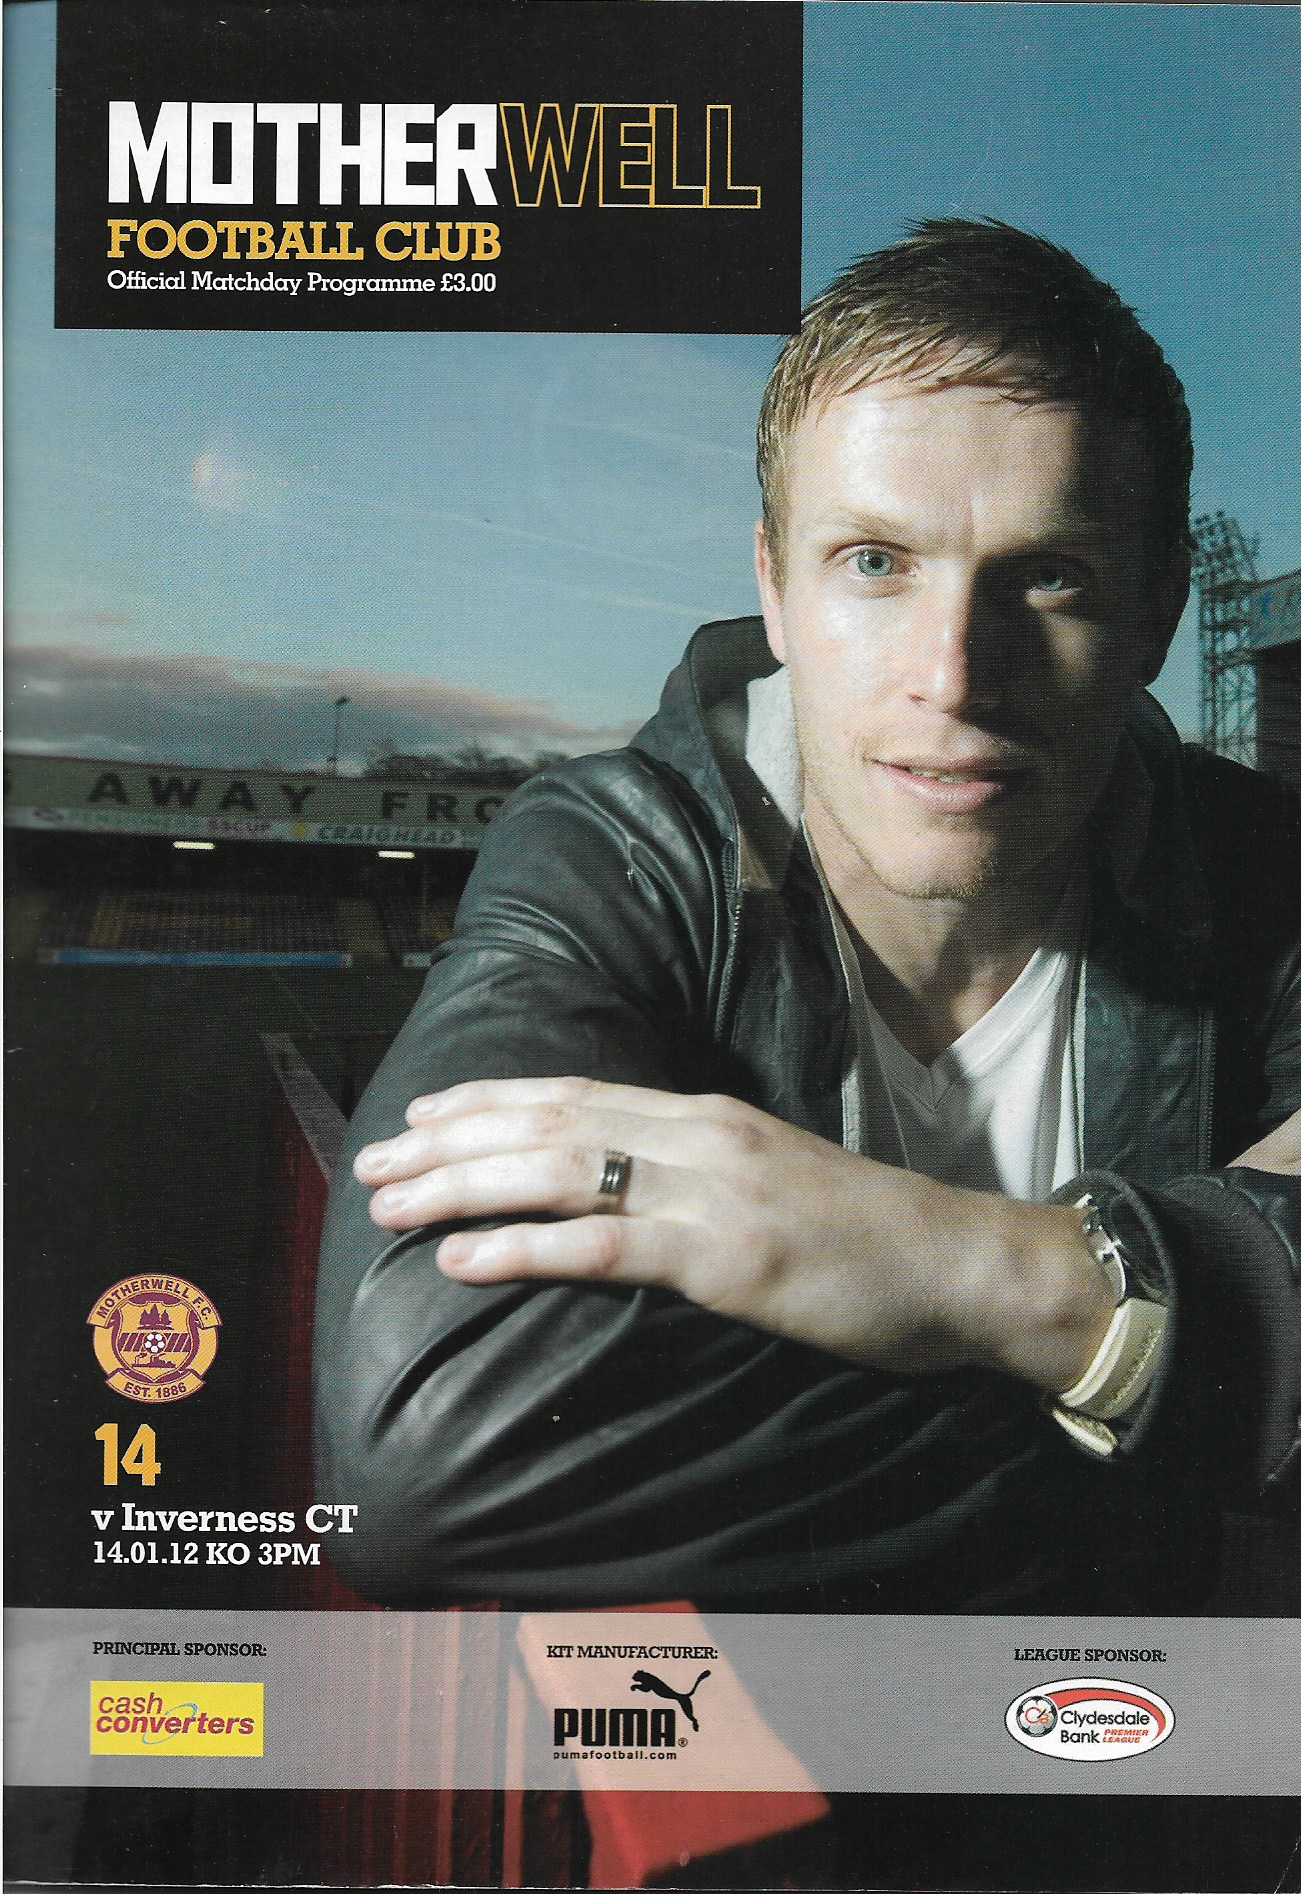 Programme Cover - 2011/12